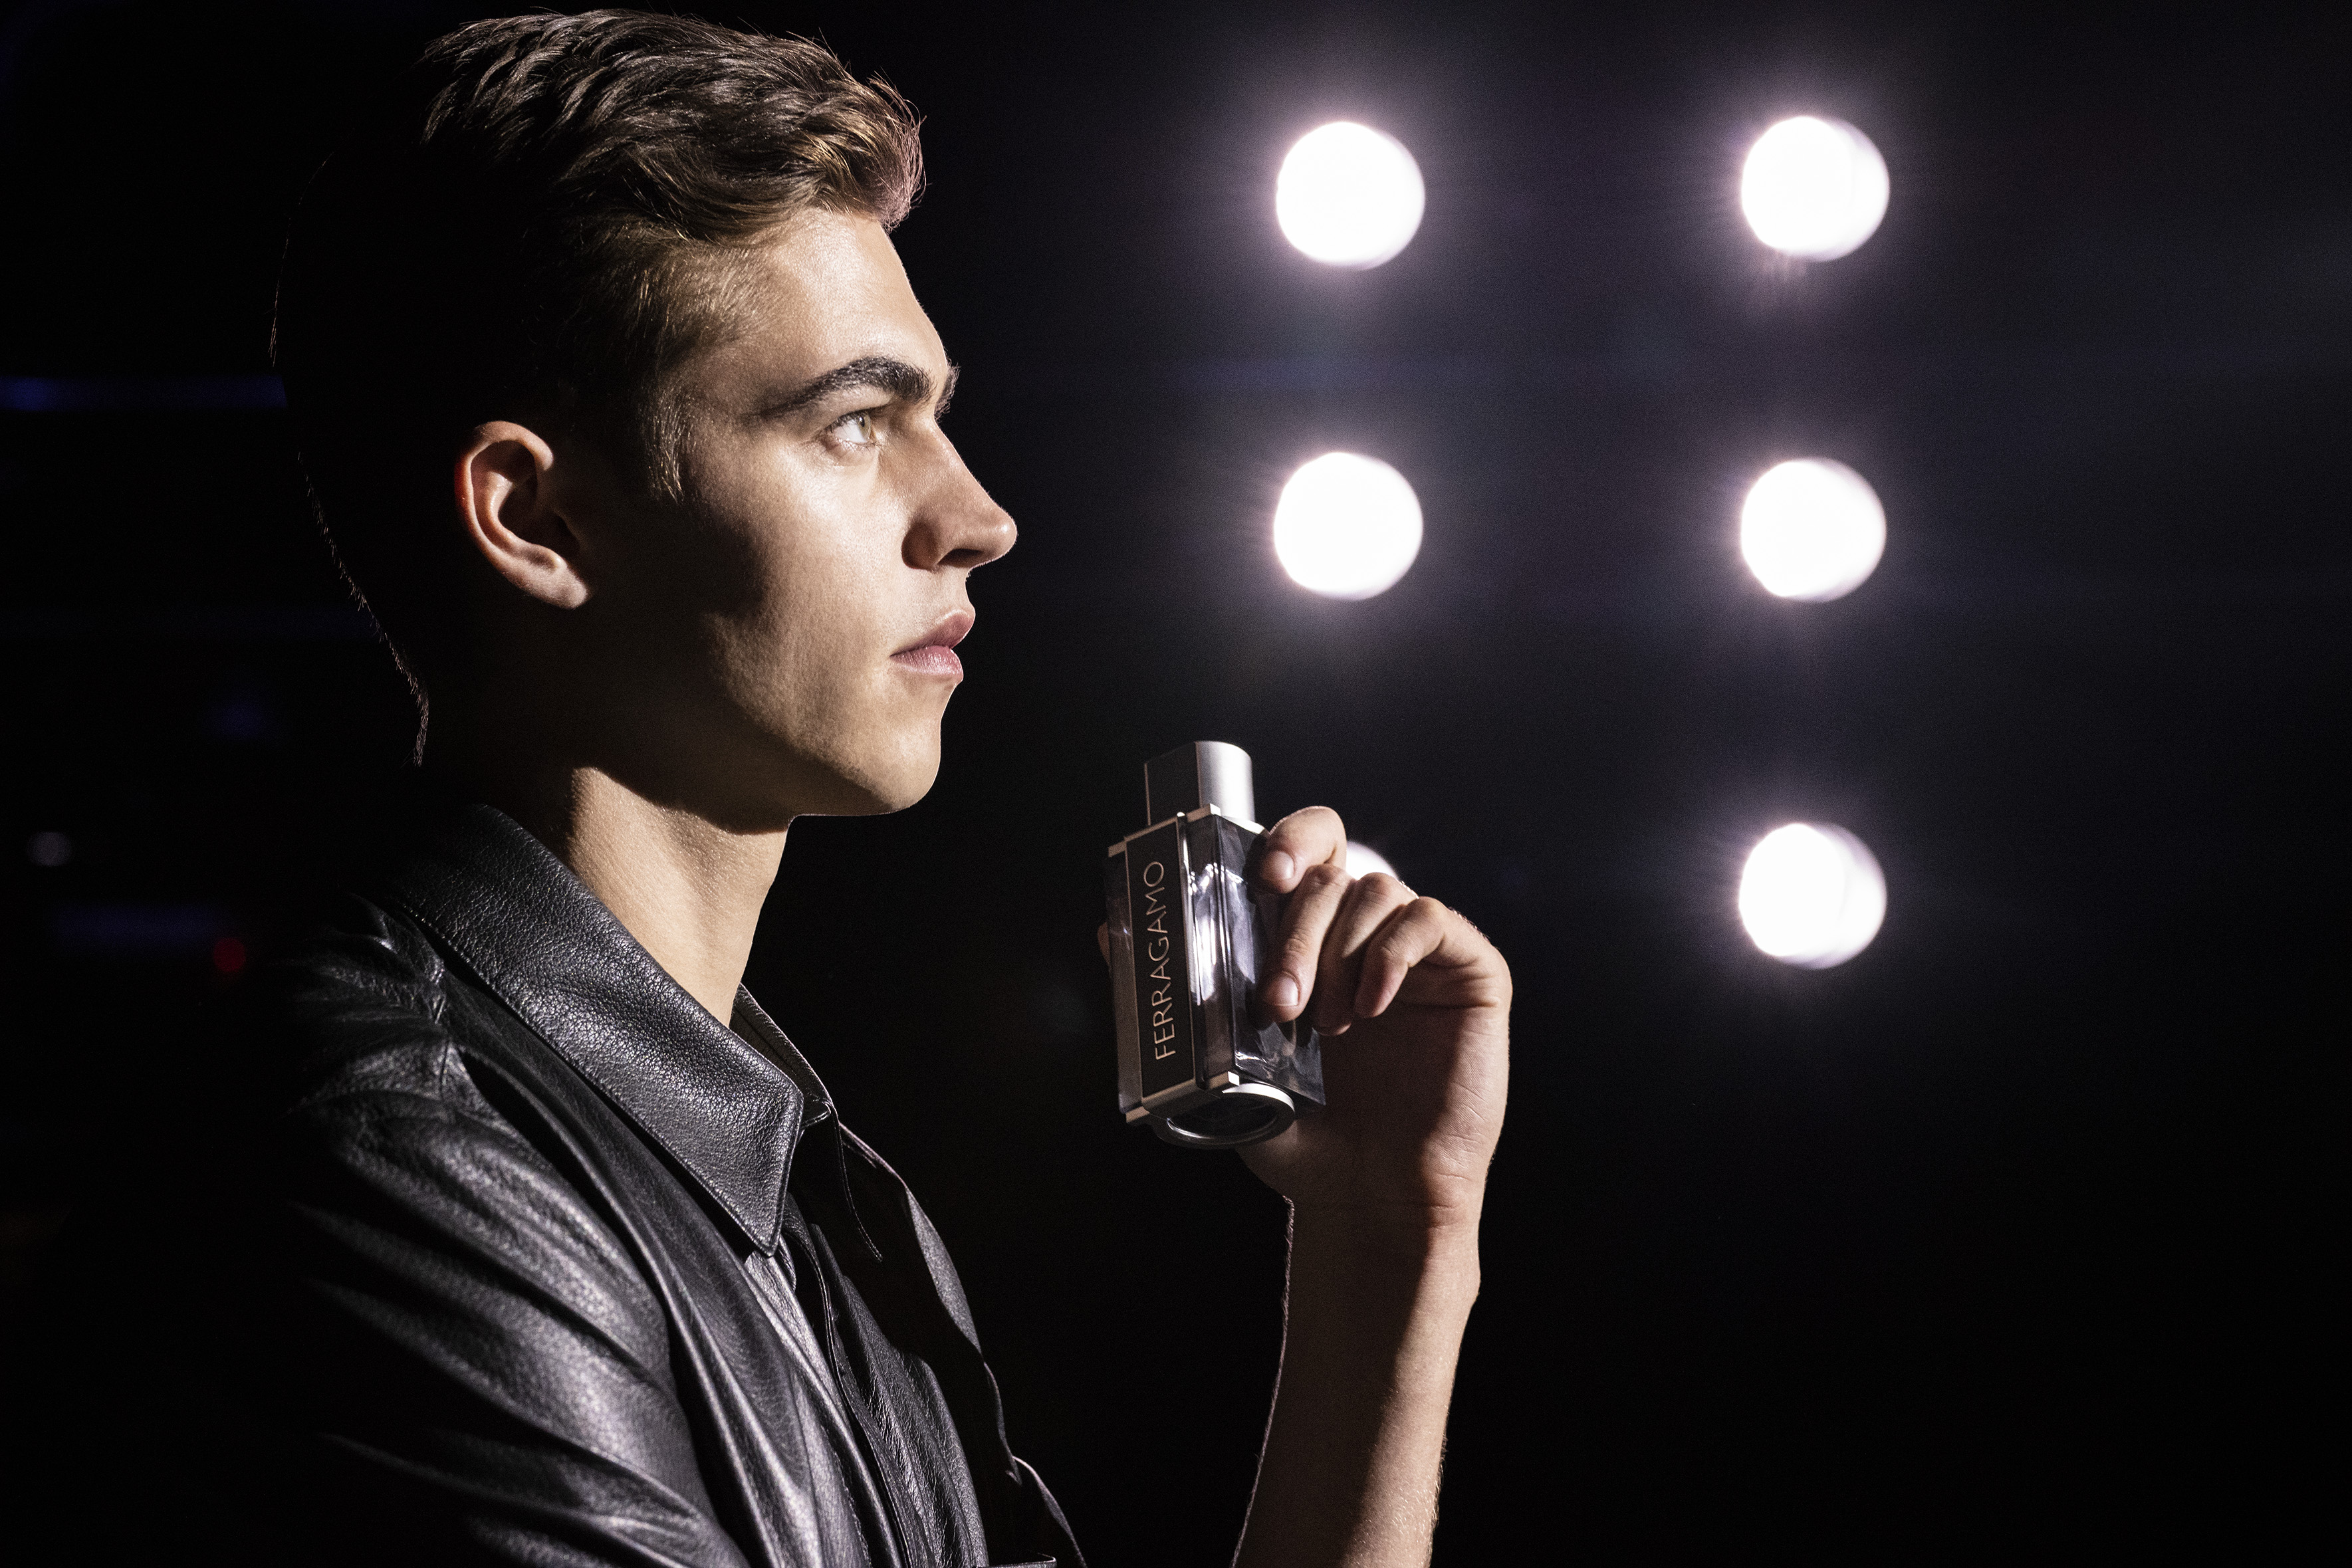 A Bright Spark: 5 Minutes With Ferragamo Fragrance's Latest Face, Hero Fiennes-Tiffin